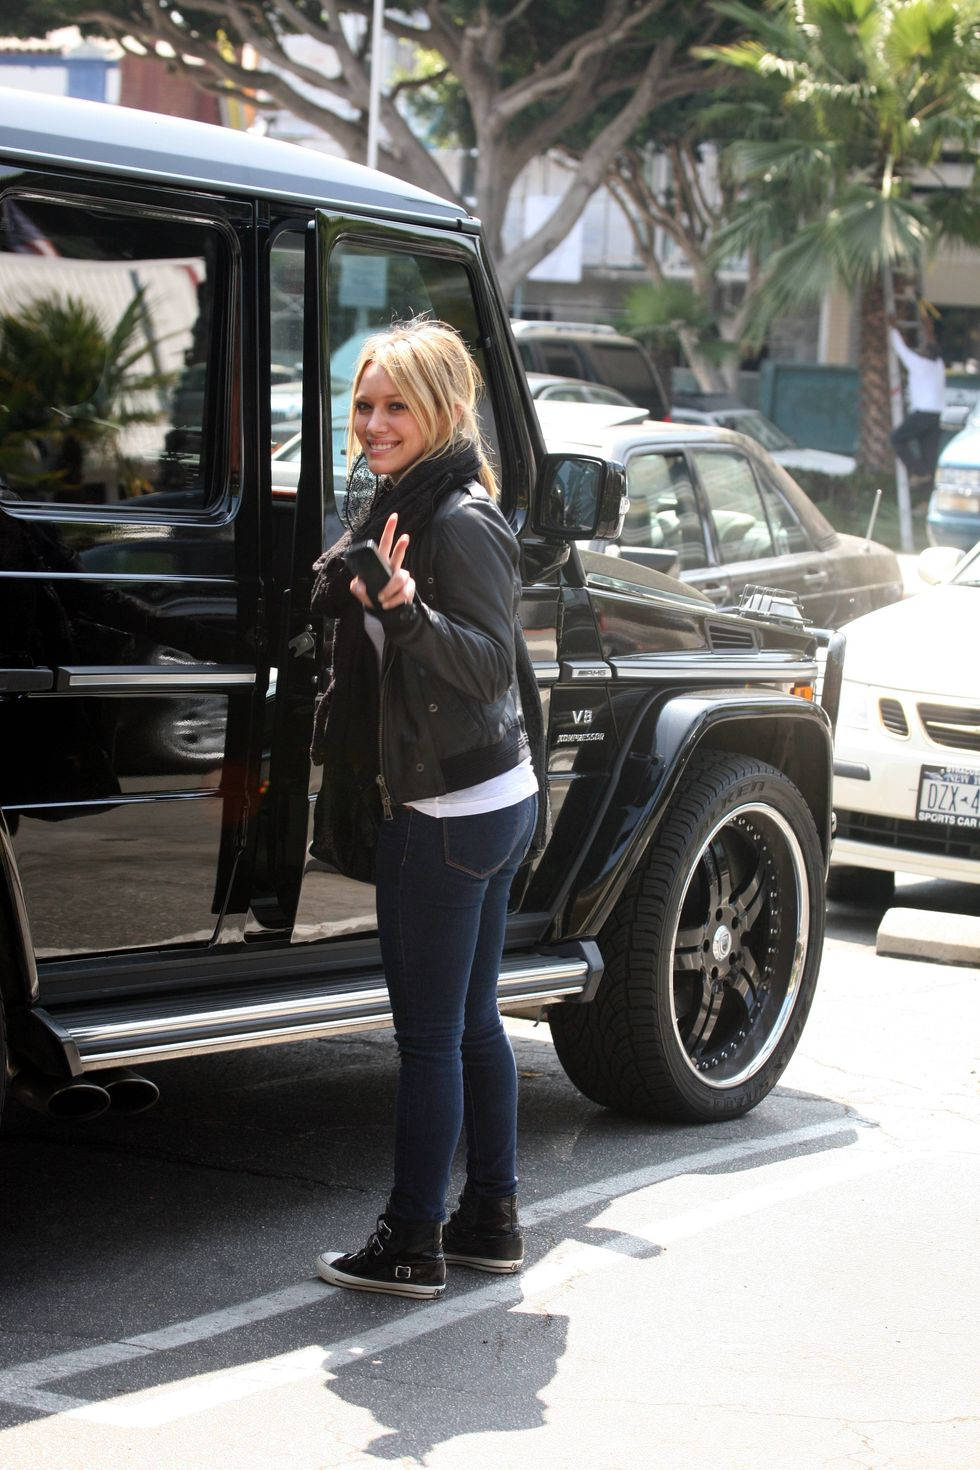 hilary-duff-candids-in-hollywood-3-01